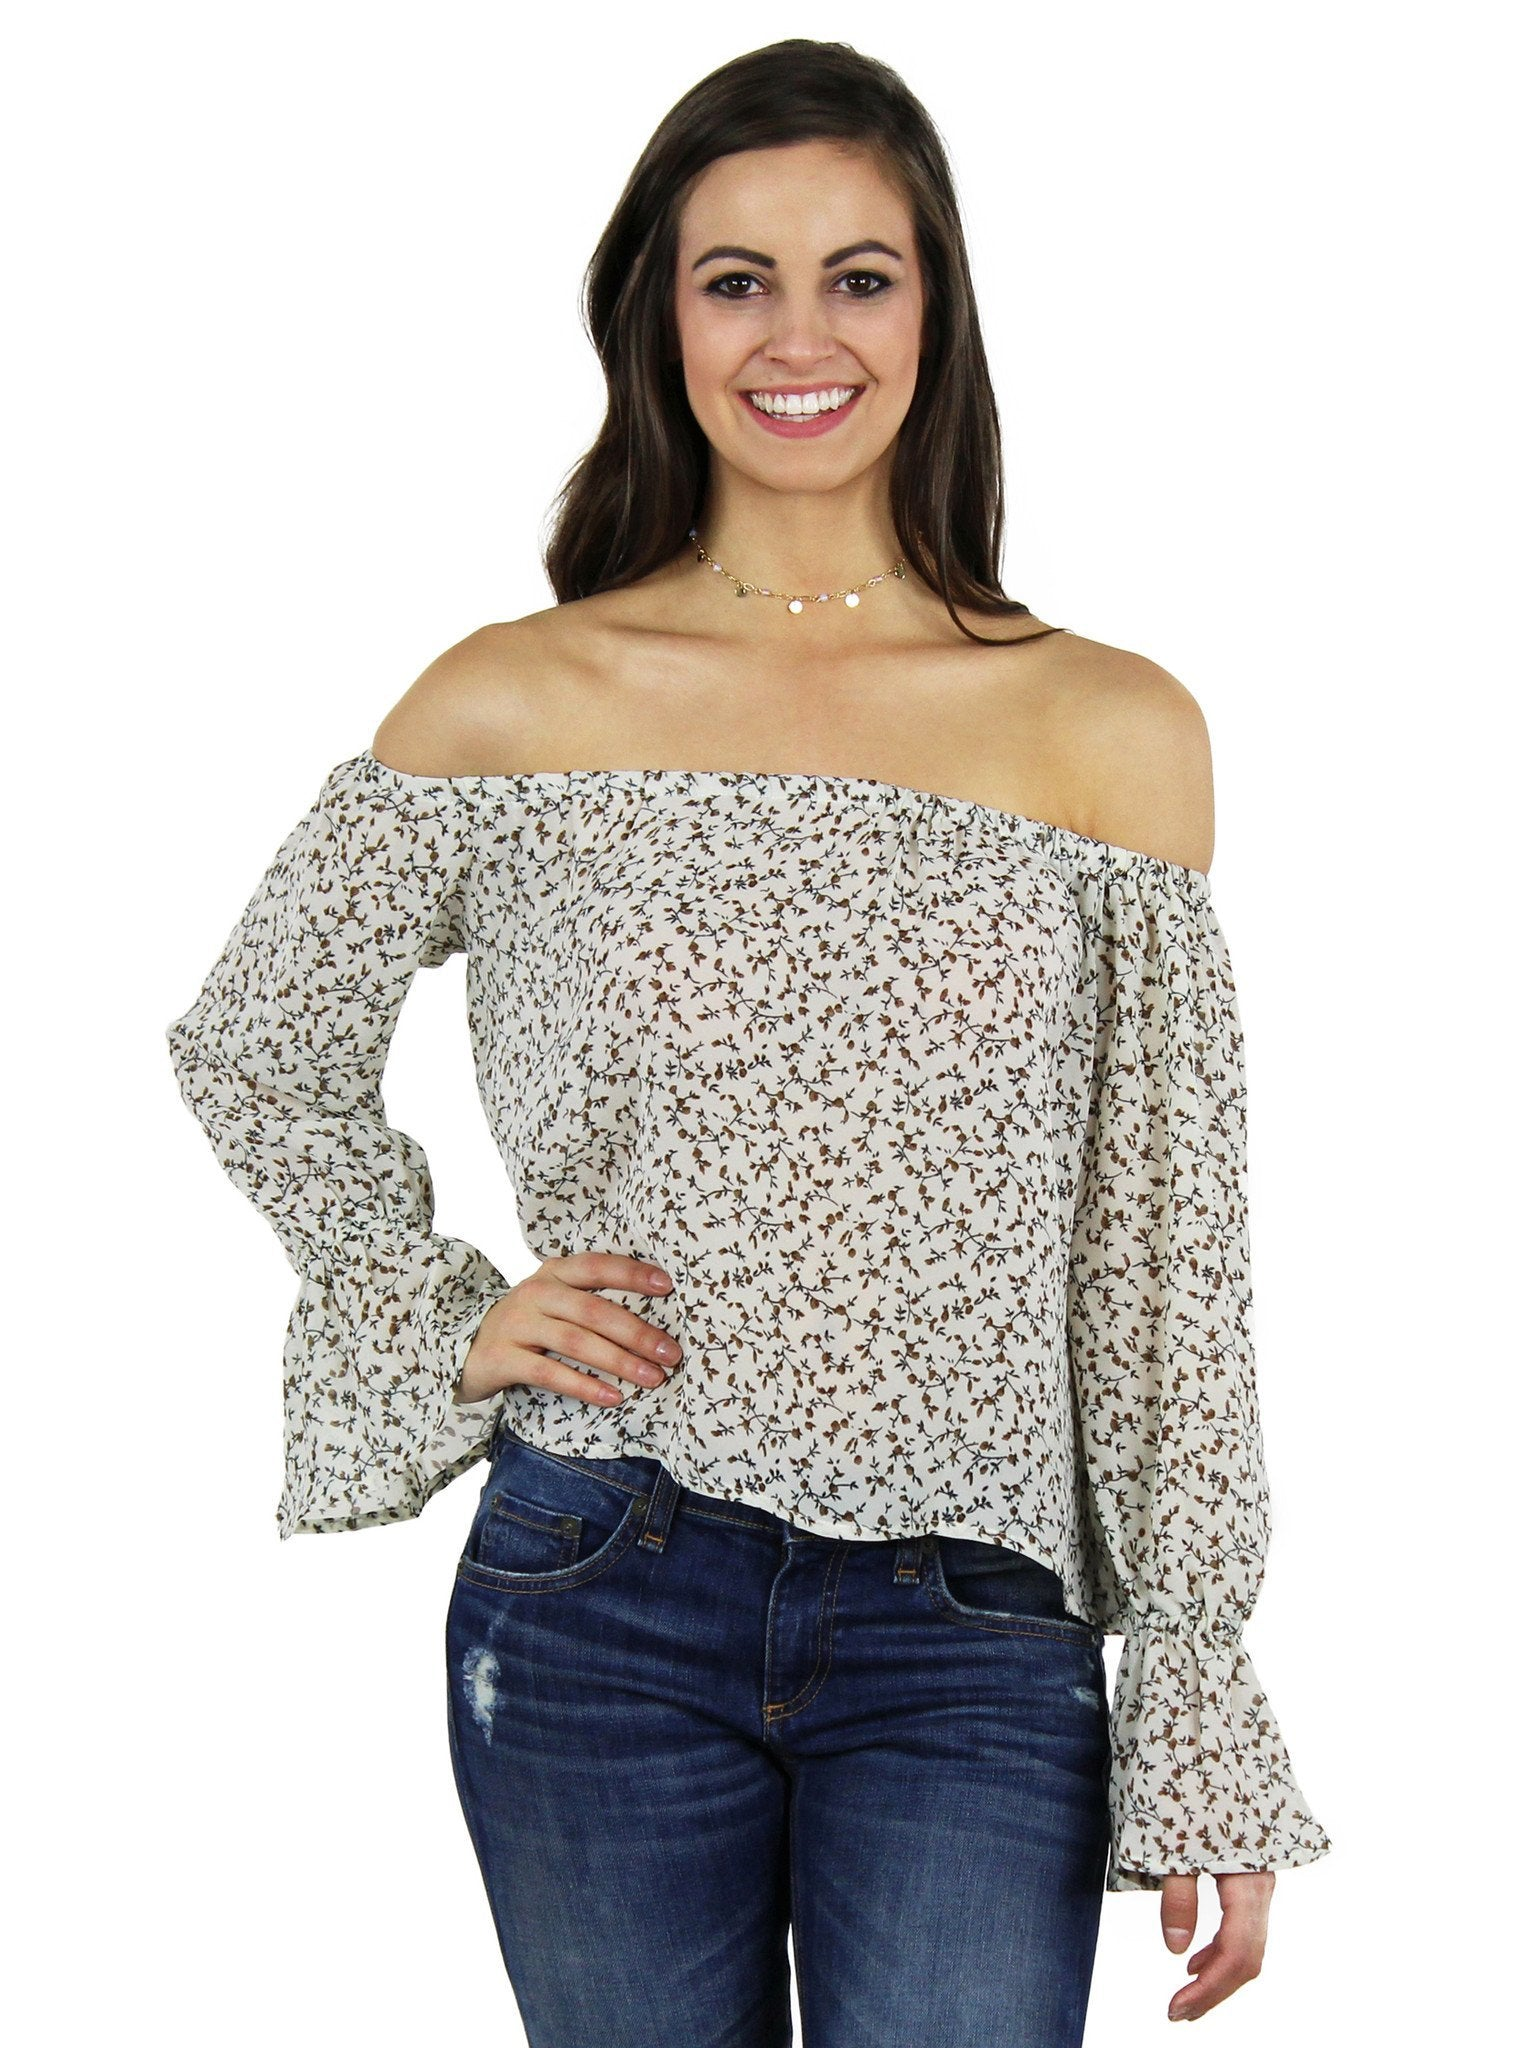 Woman wearing a top rental from Lucca Couture called Off Shoulder Ruffle Sleeve Top